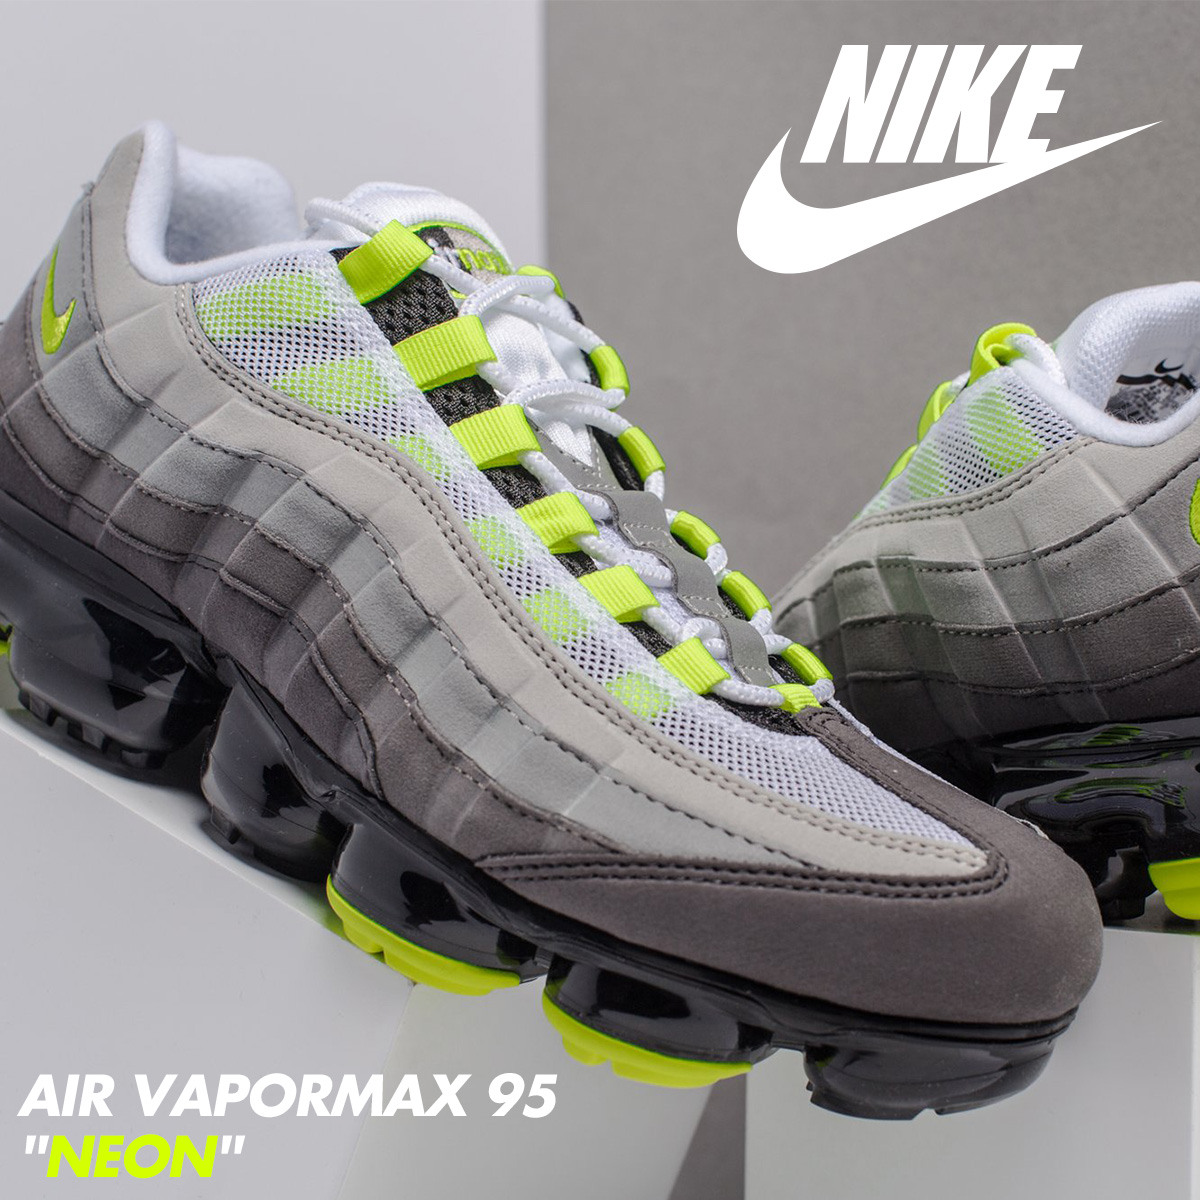 "Nike to launch Air VaporMax 95 ""Neon"""